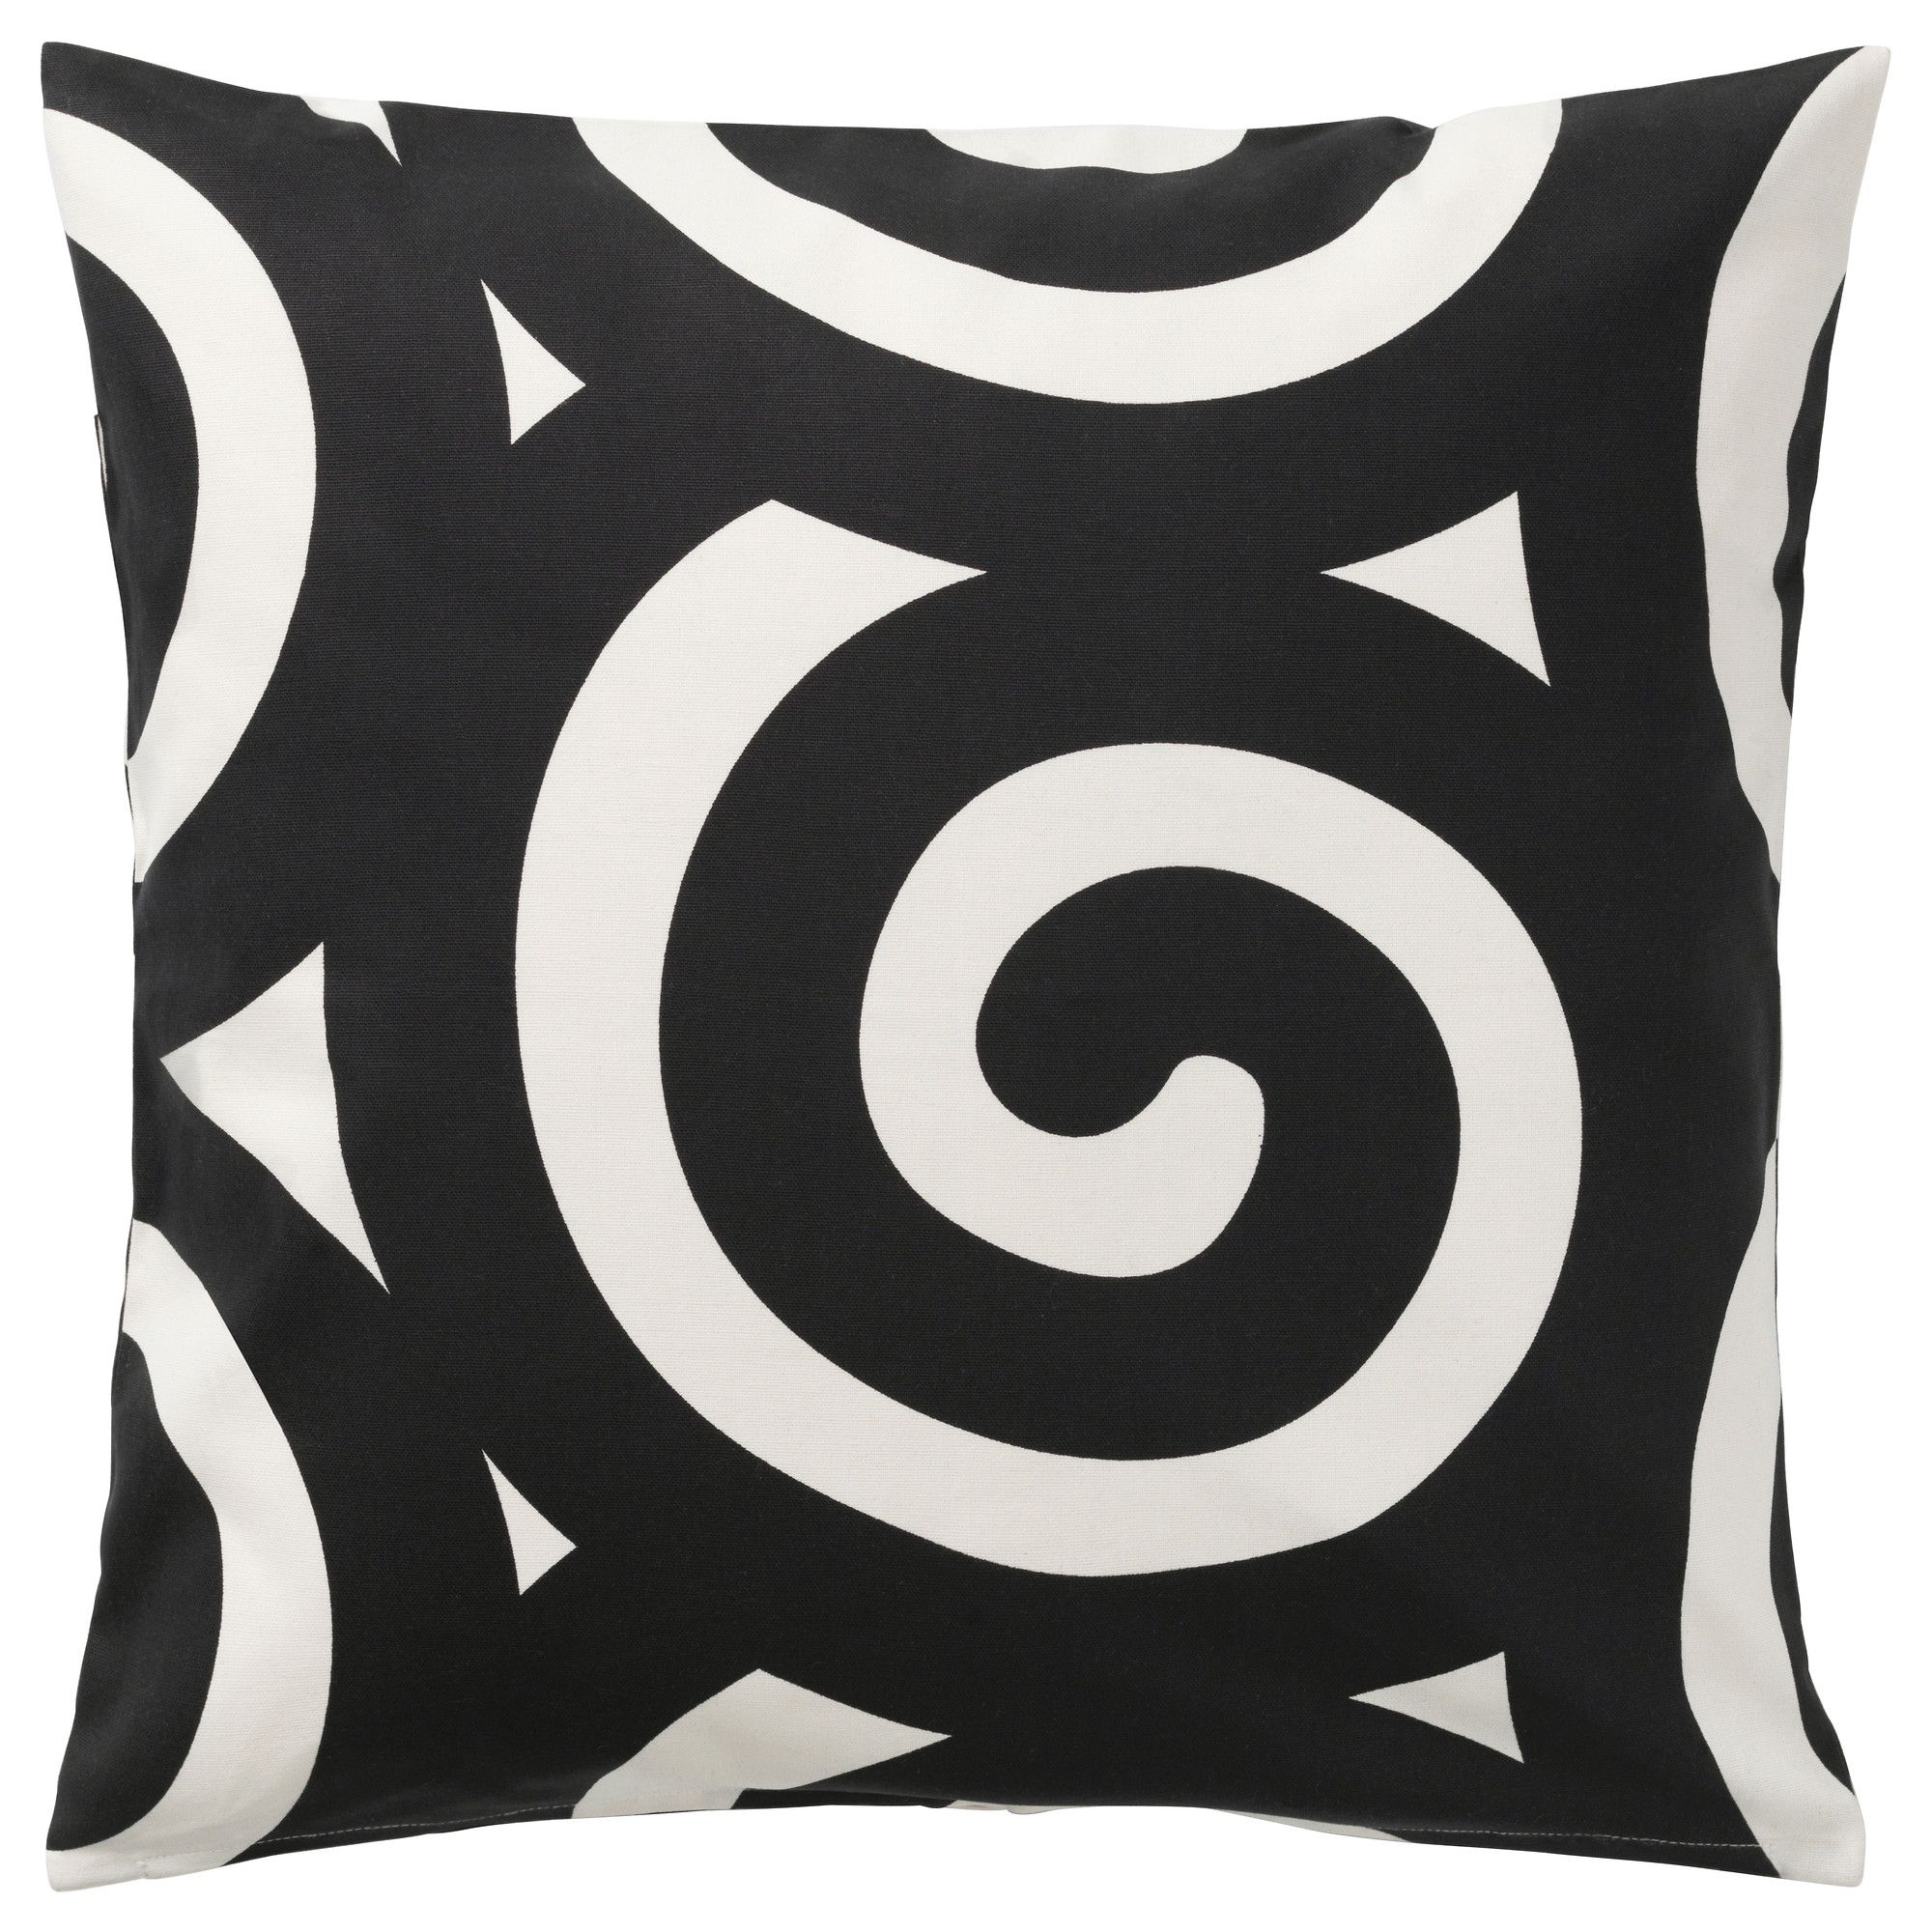 Refresh any room with bold pillows The IKEA TR DKL VER cushion